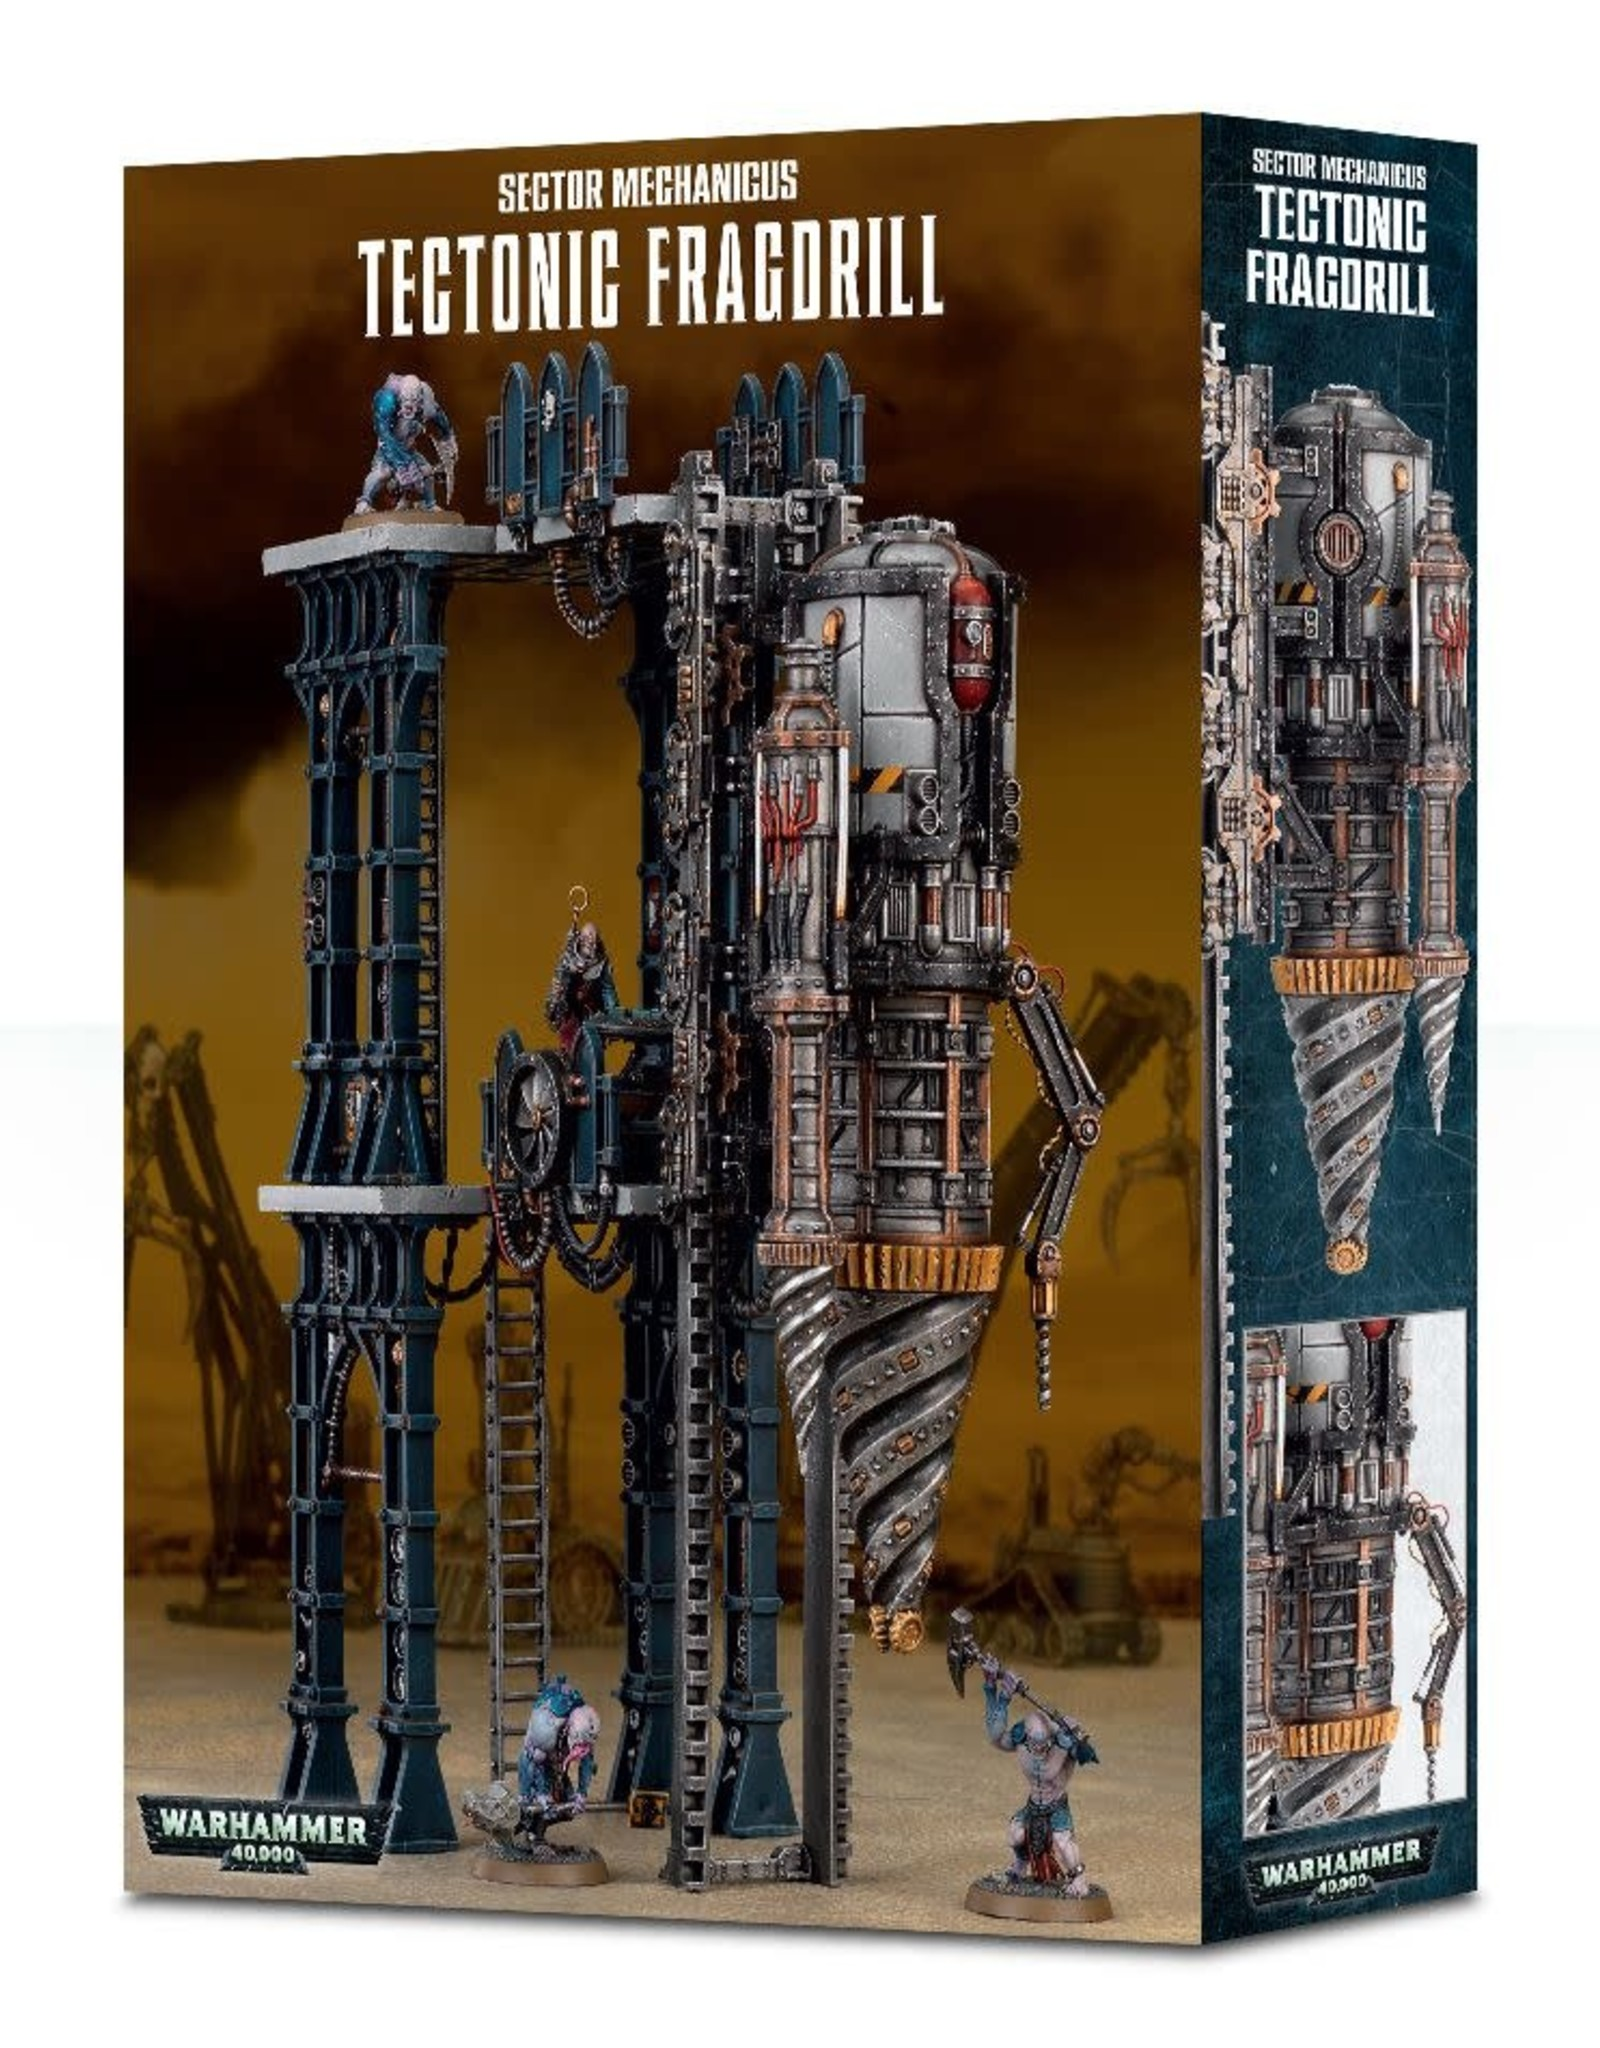 Warhammer 40K Sector Mechanicus: Tectonic Fragdrill